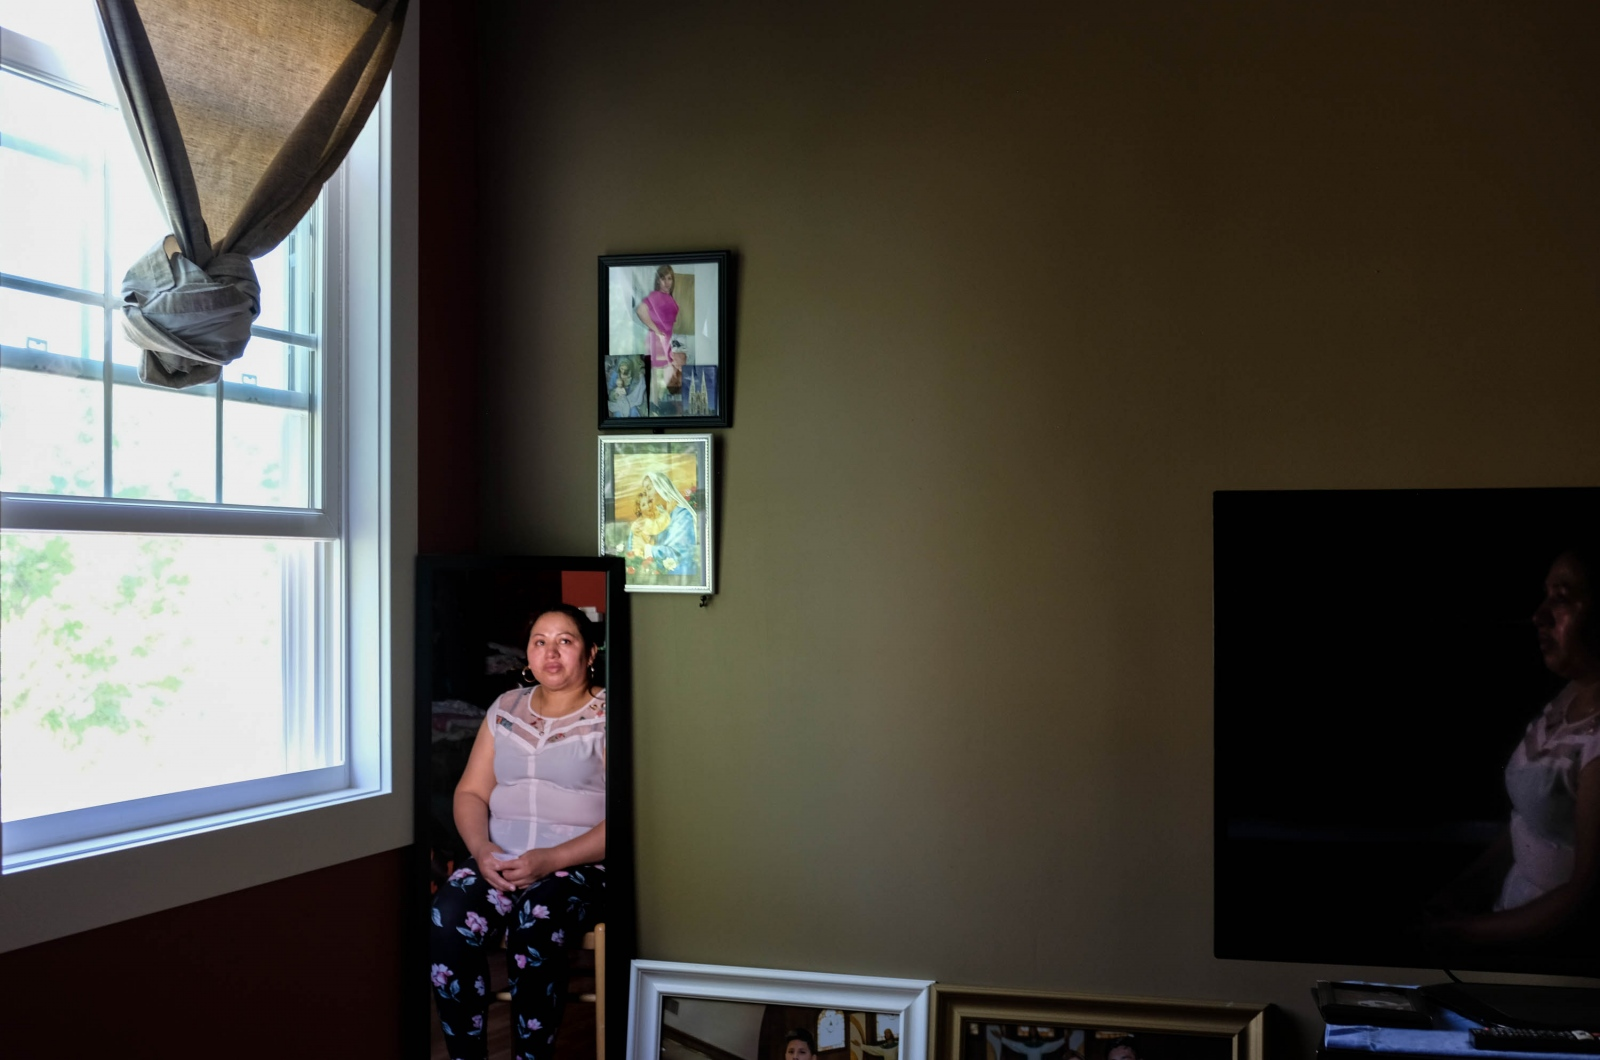 "Andrea Punin, 37, sister of the missing Jacqueline Punin, looking at a photograph on her bedroom wall. She says she wants to make an altar to honor her sister. Shot for "" Families of Missing Migrants Find Few Answers, Only Anguish.""  Gabriella N. Báez/NYT Institute"